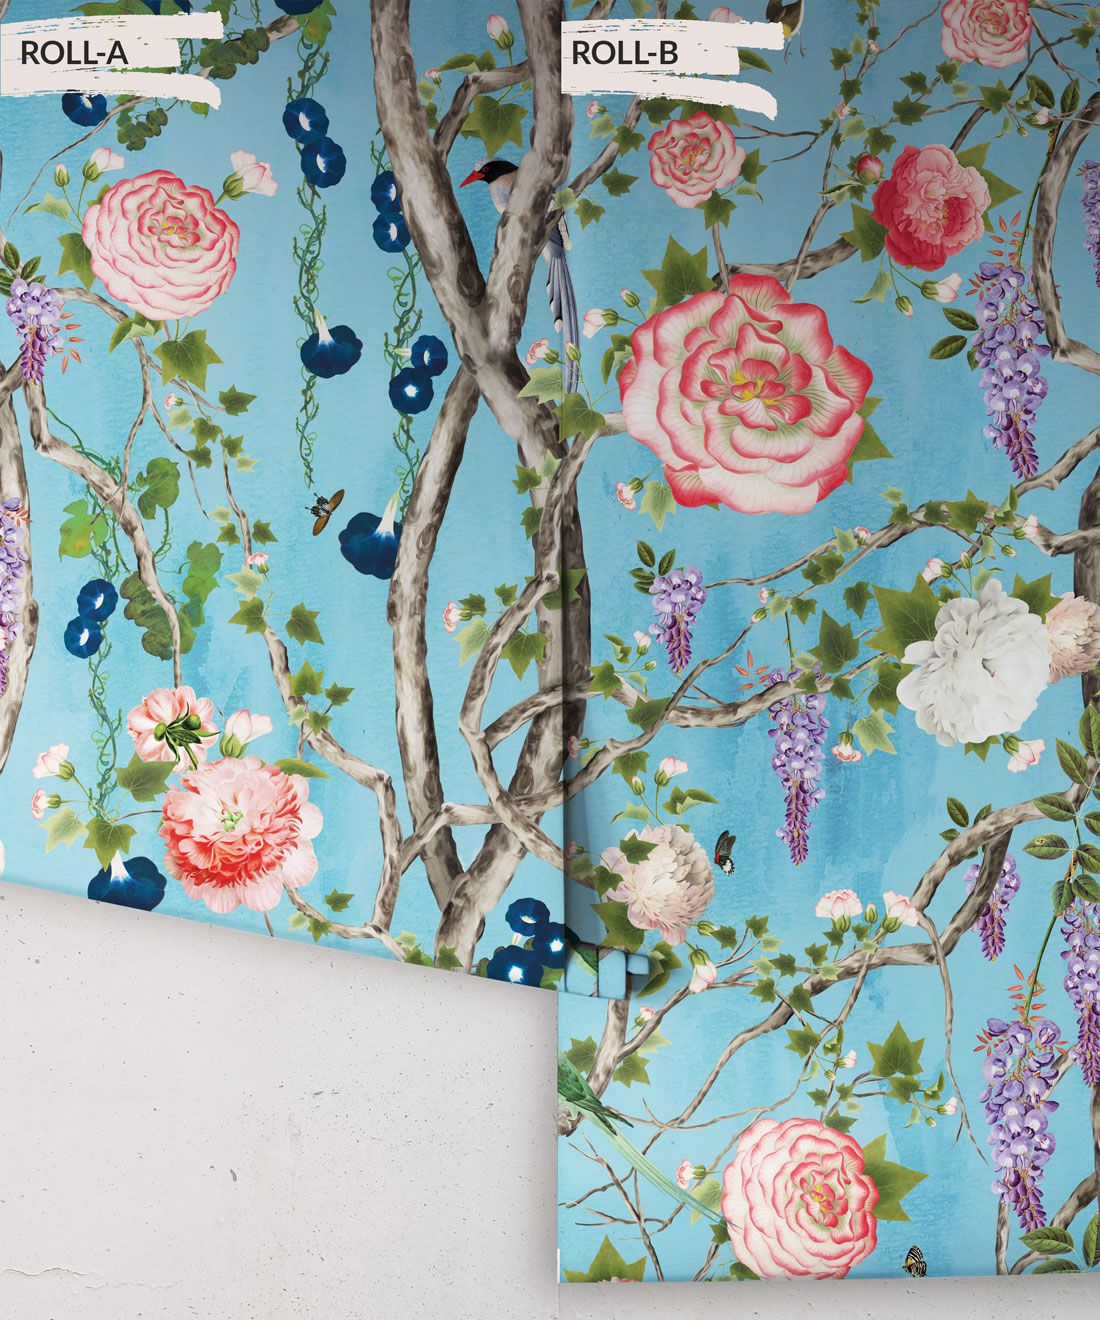 Empress Wallpaper • Romantic Wallpaper • Floral Wallpaper • Chinoiserie Wallpaper • Sky Blue colour wallpaper rolls